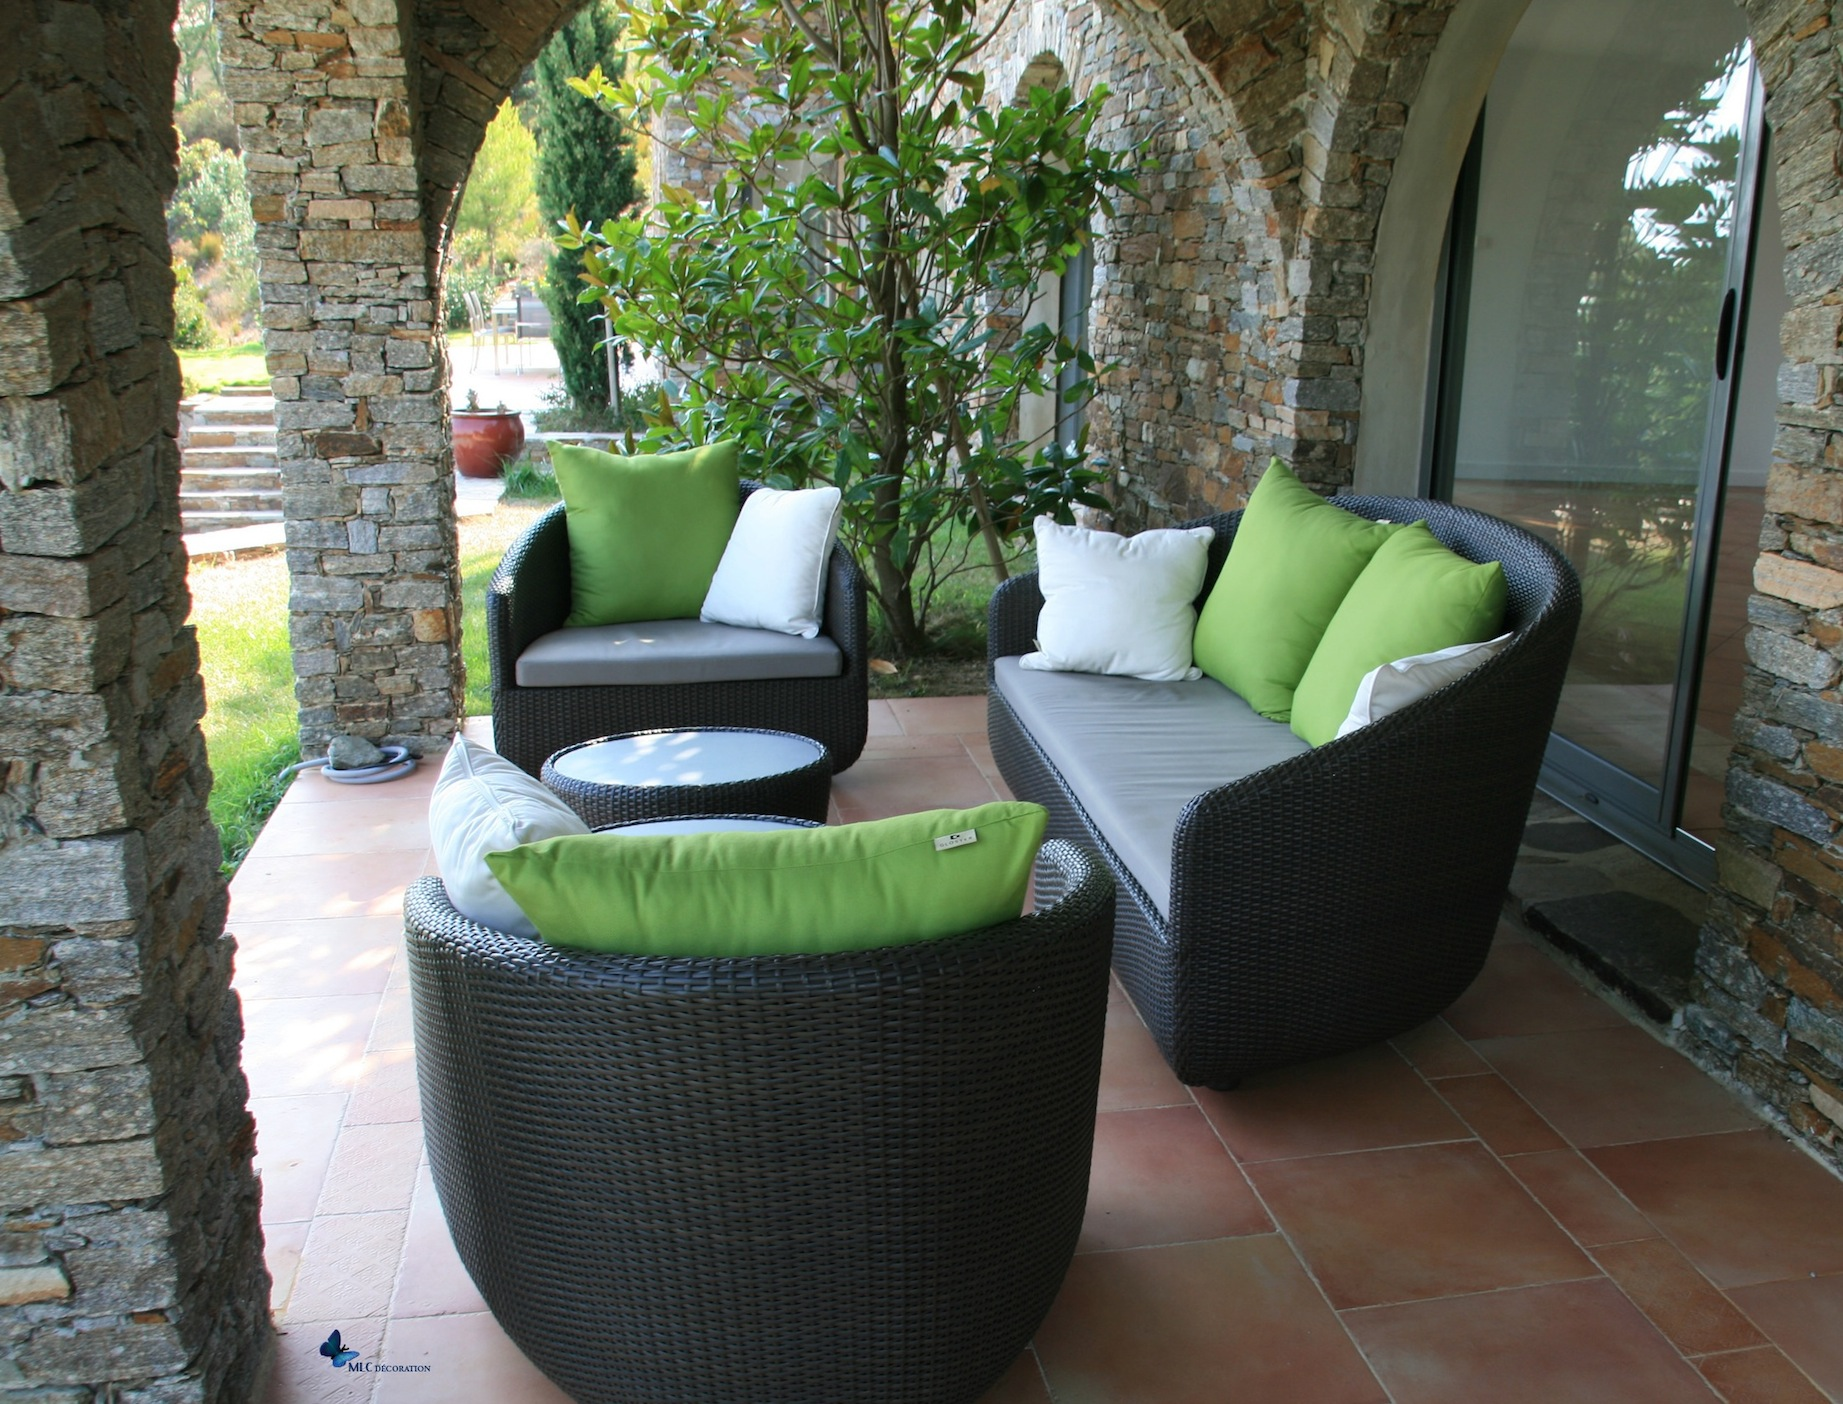 Canap ext rieur design archives le blog d co de mlc for Idee de jardin design